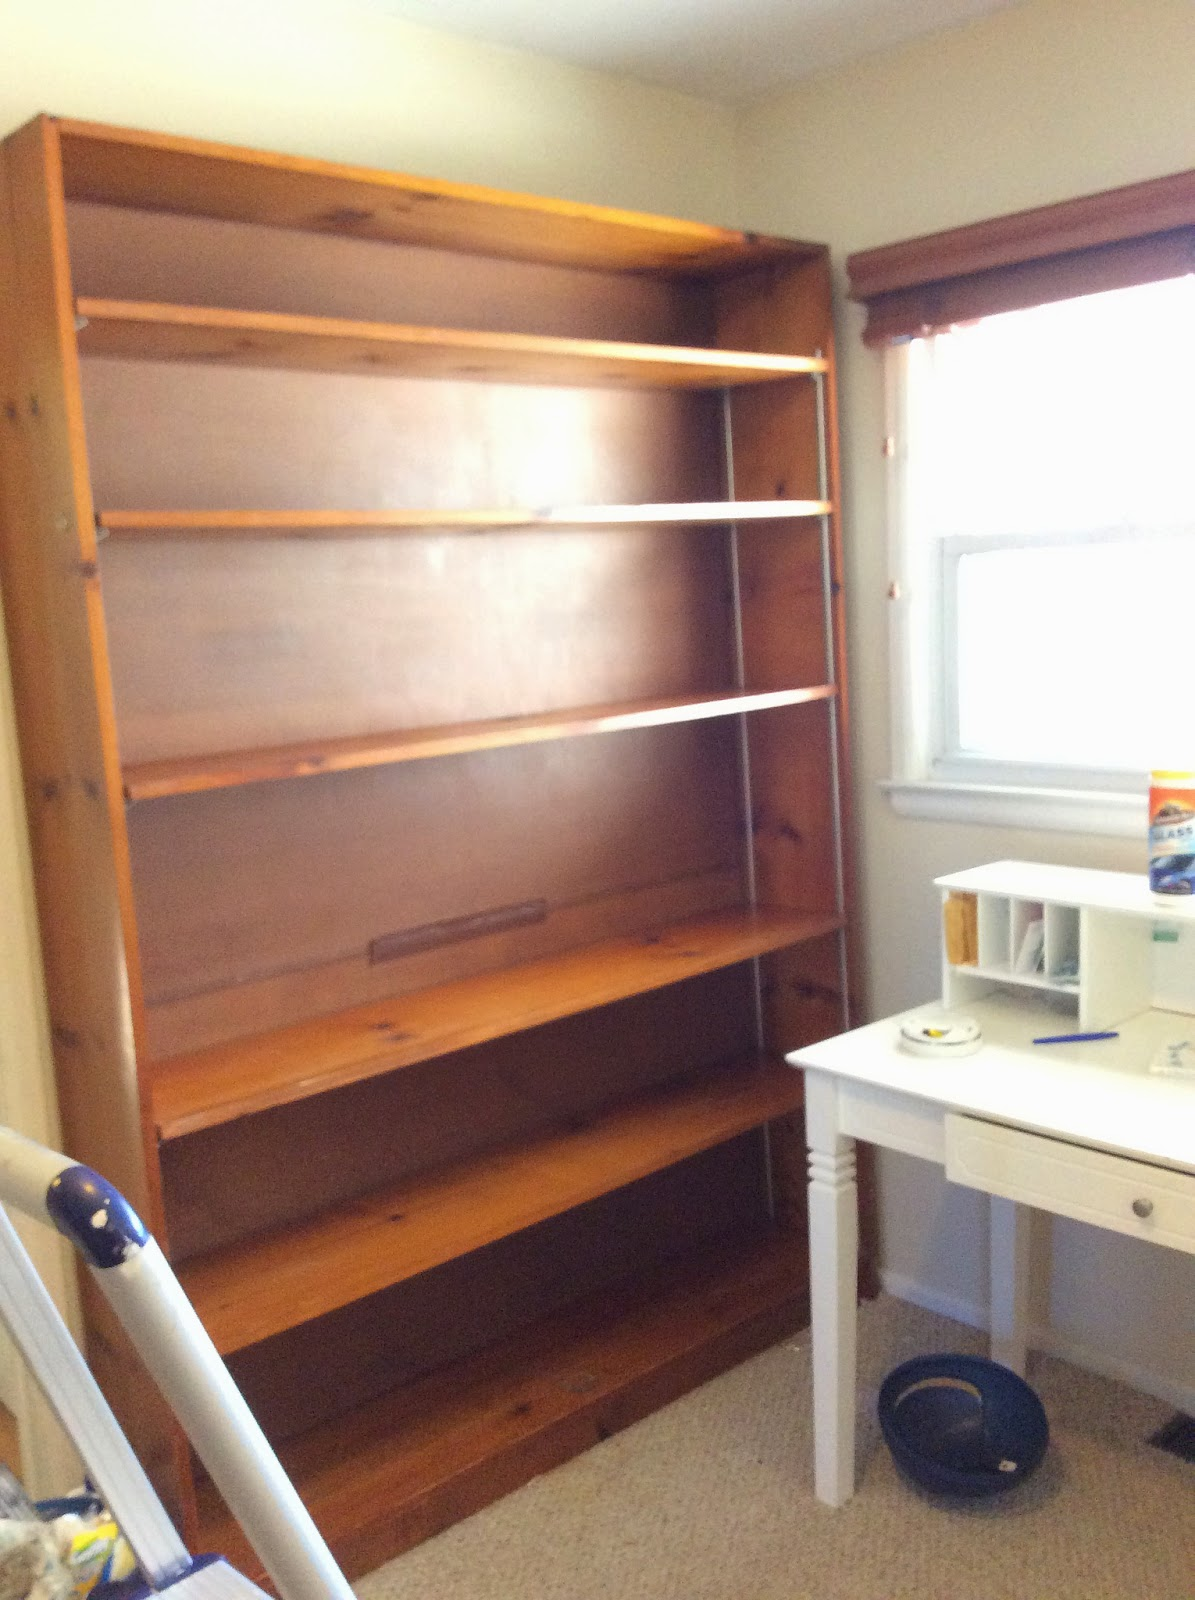 painting wooden shelves